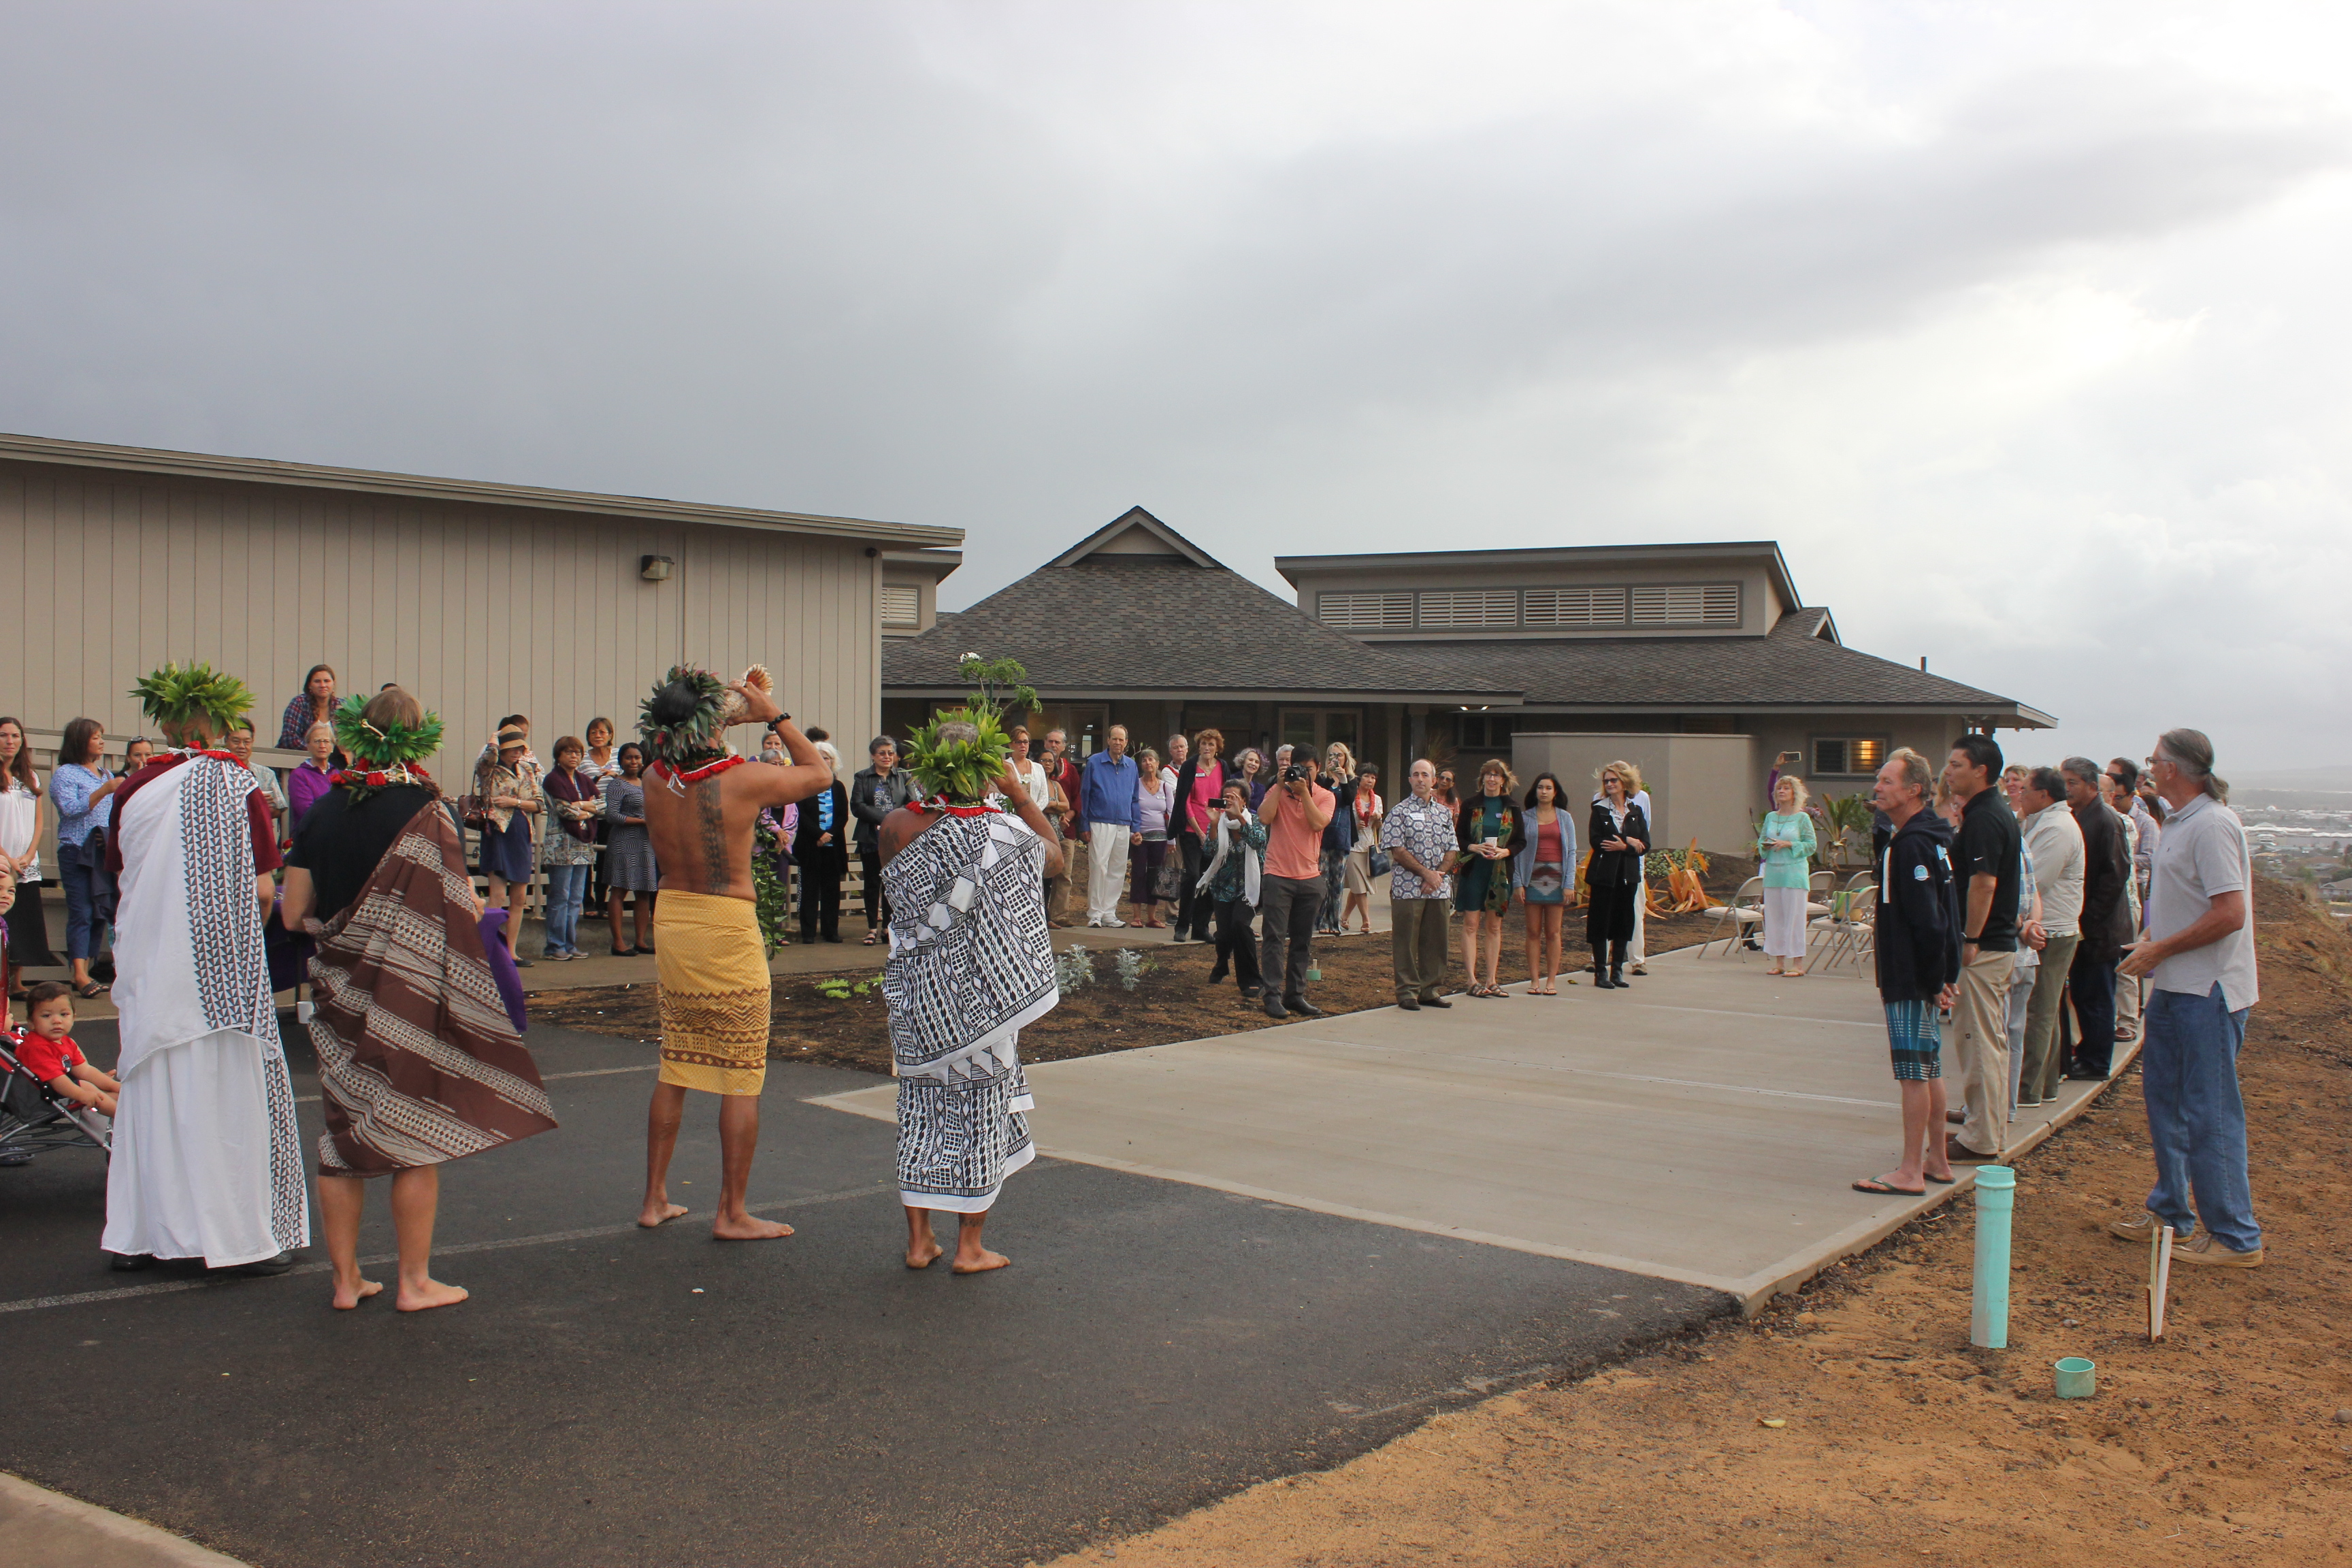 Opening Blessing for Hospice Maui Hale . PC: 12.1.16 Astrid Grupenhoff